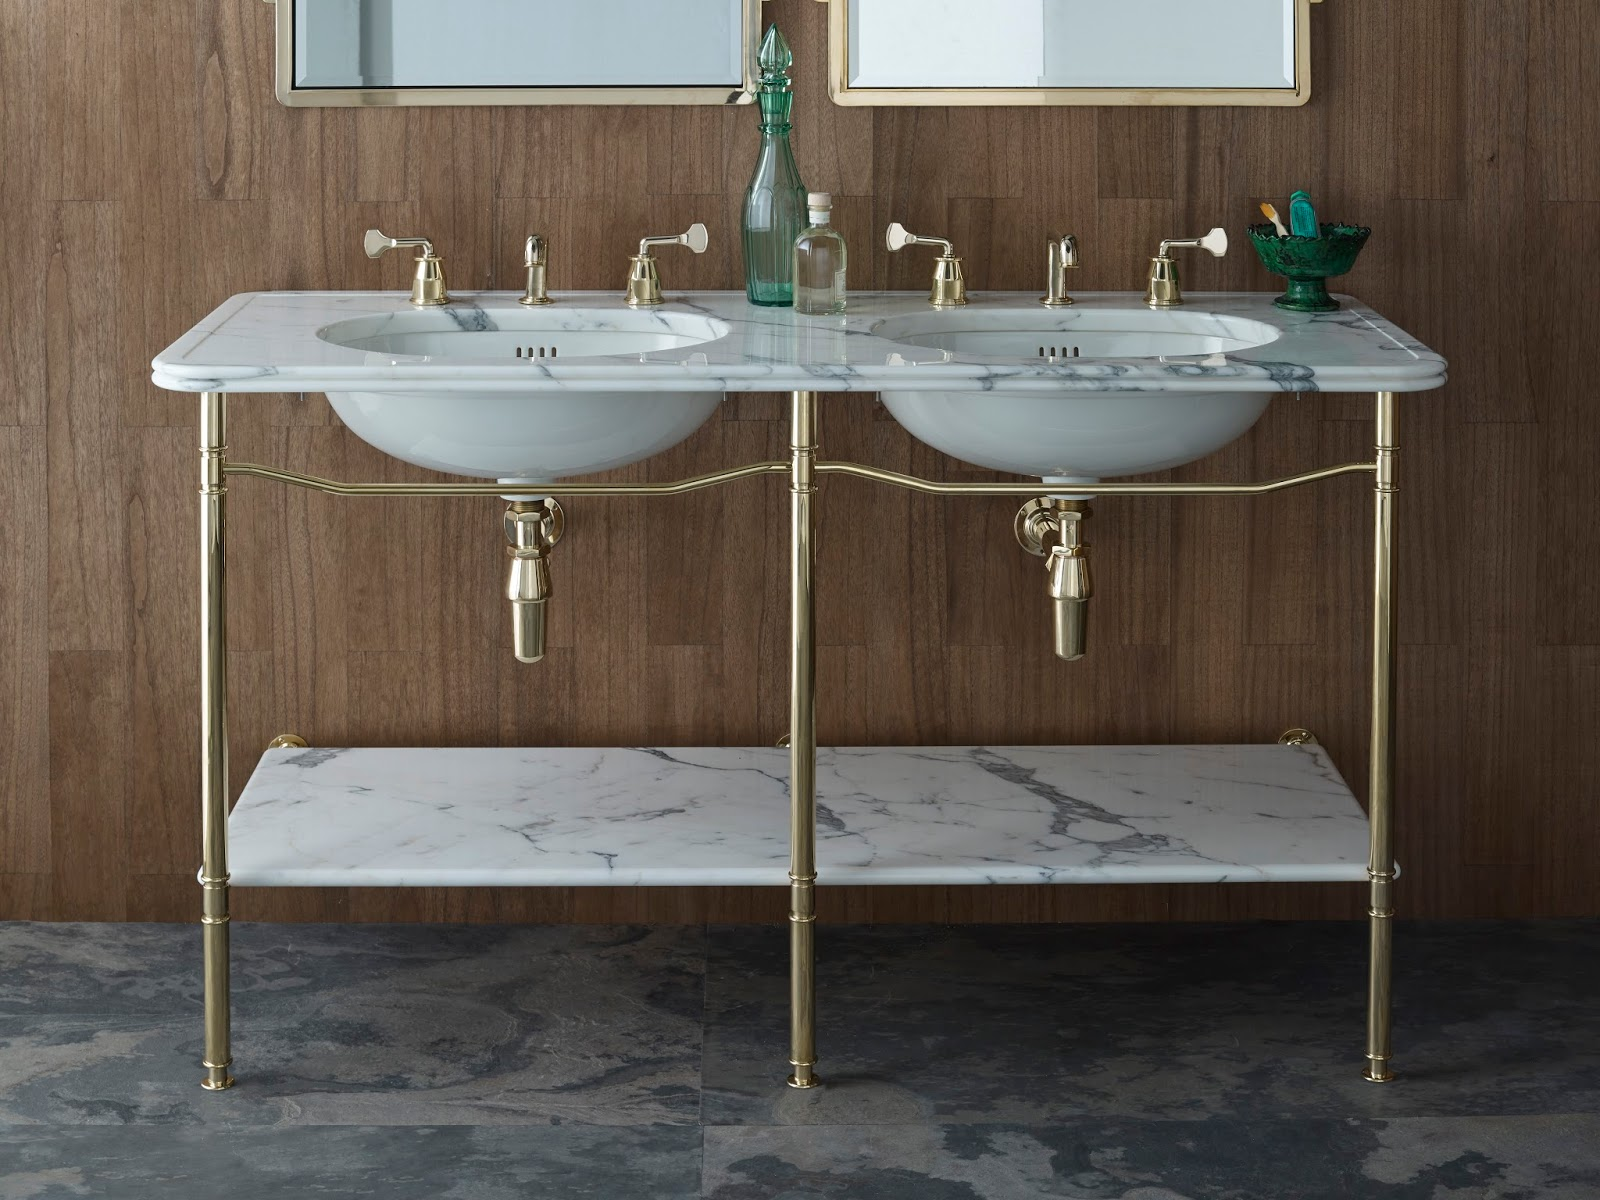 bathroom fixtures and fittings, hellopeagreen blog, bathroom design